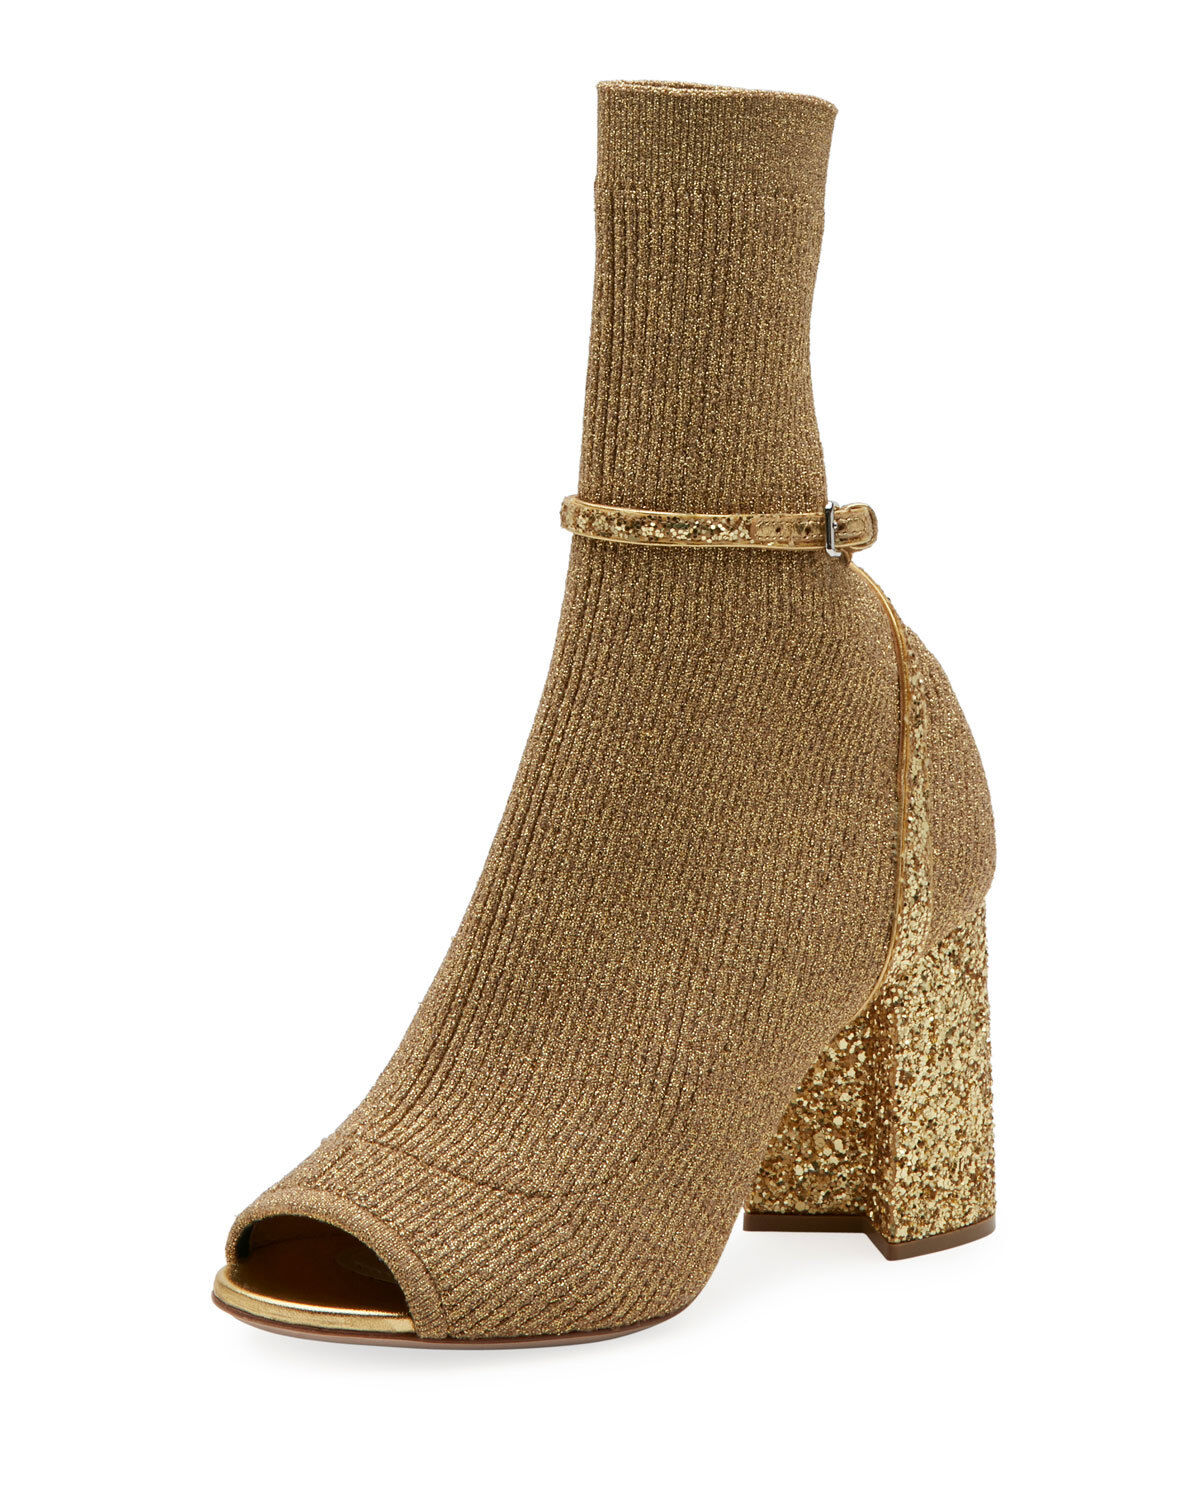 NEW  990 Miu Miu by Prada Stretch Sock Ankle Booties Open Toe gold 36.5   6.5 US